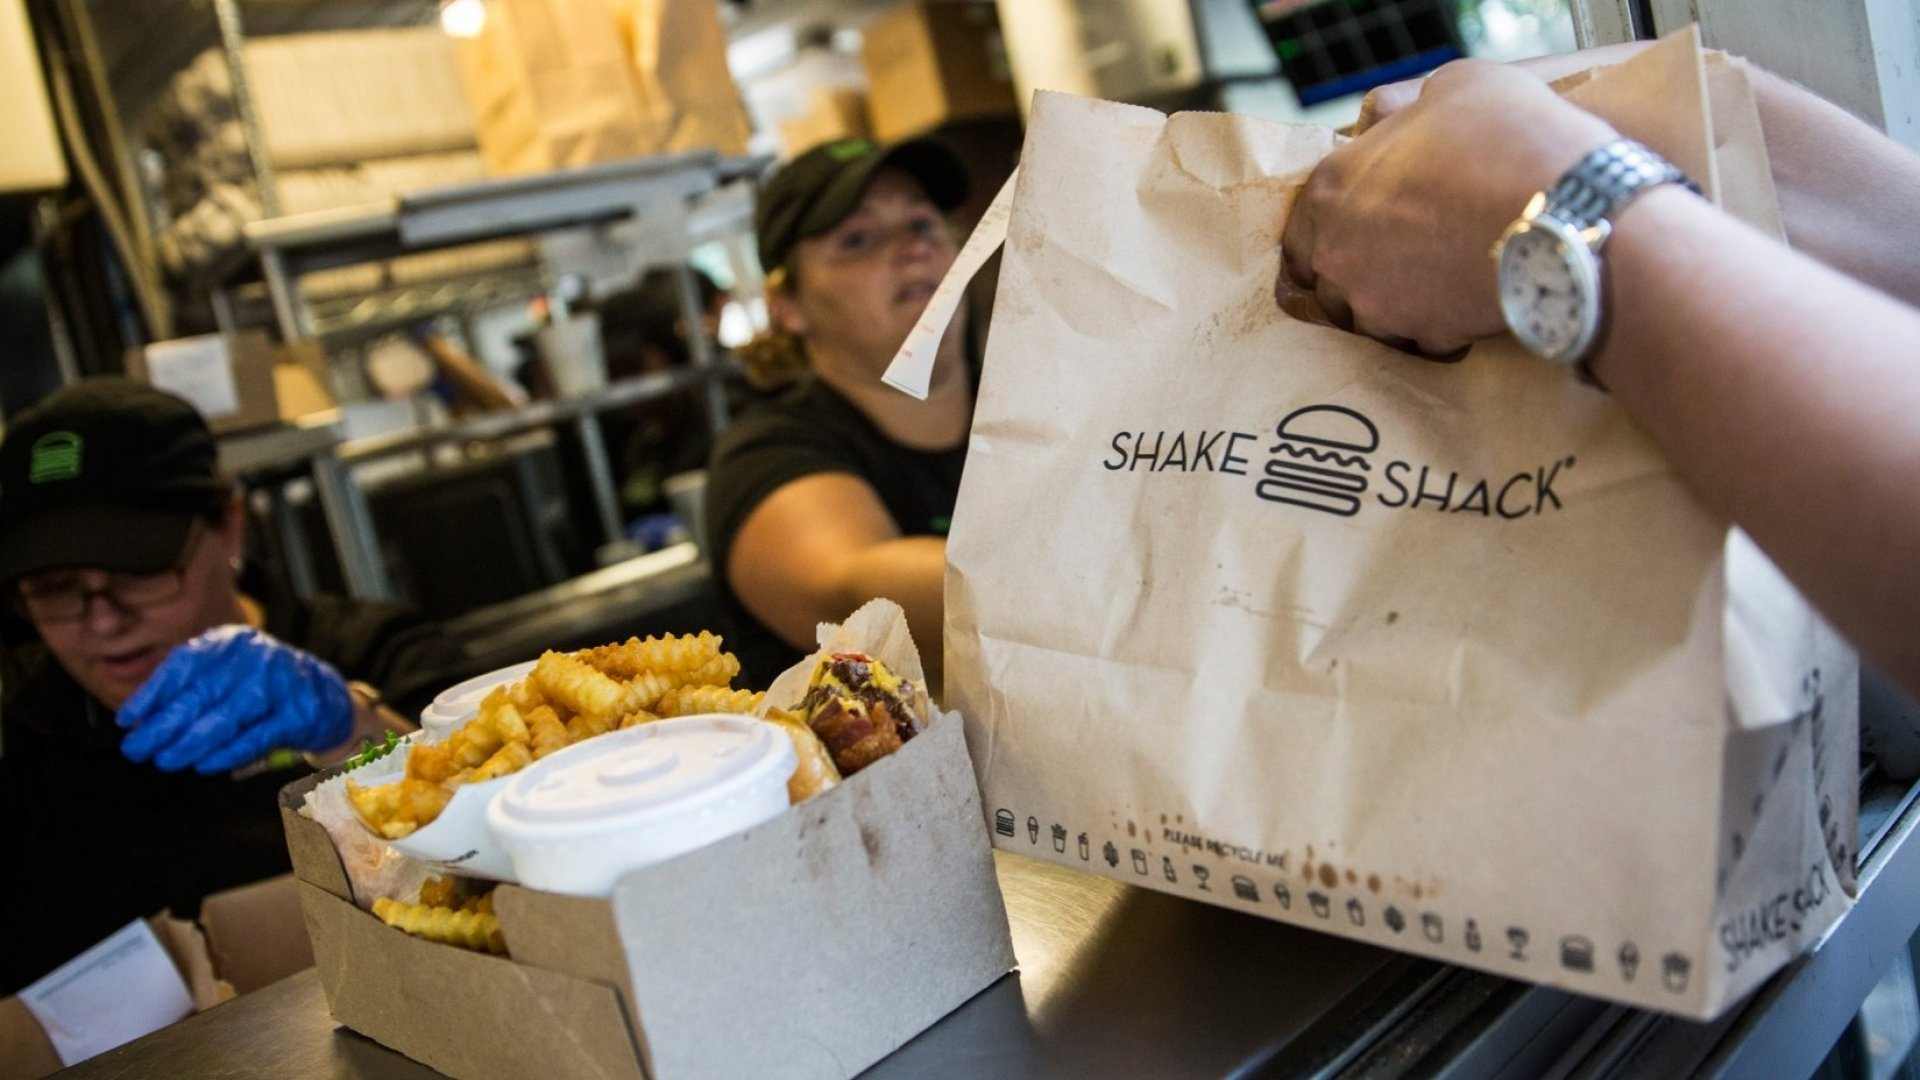 The High-Tech Ways Shake Shack and Warby Parker Get Personal With Customers